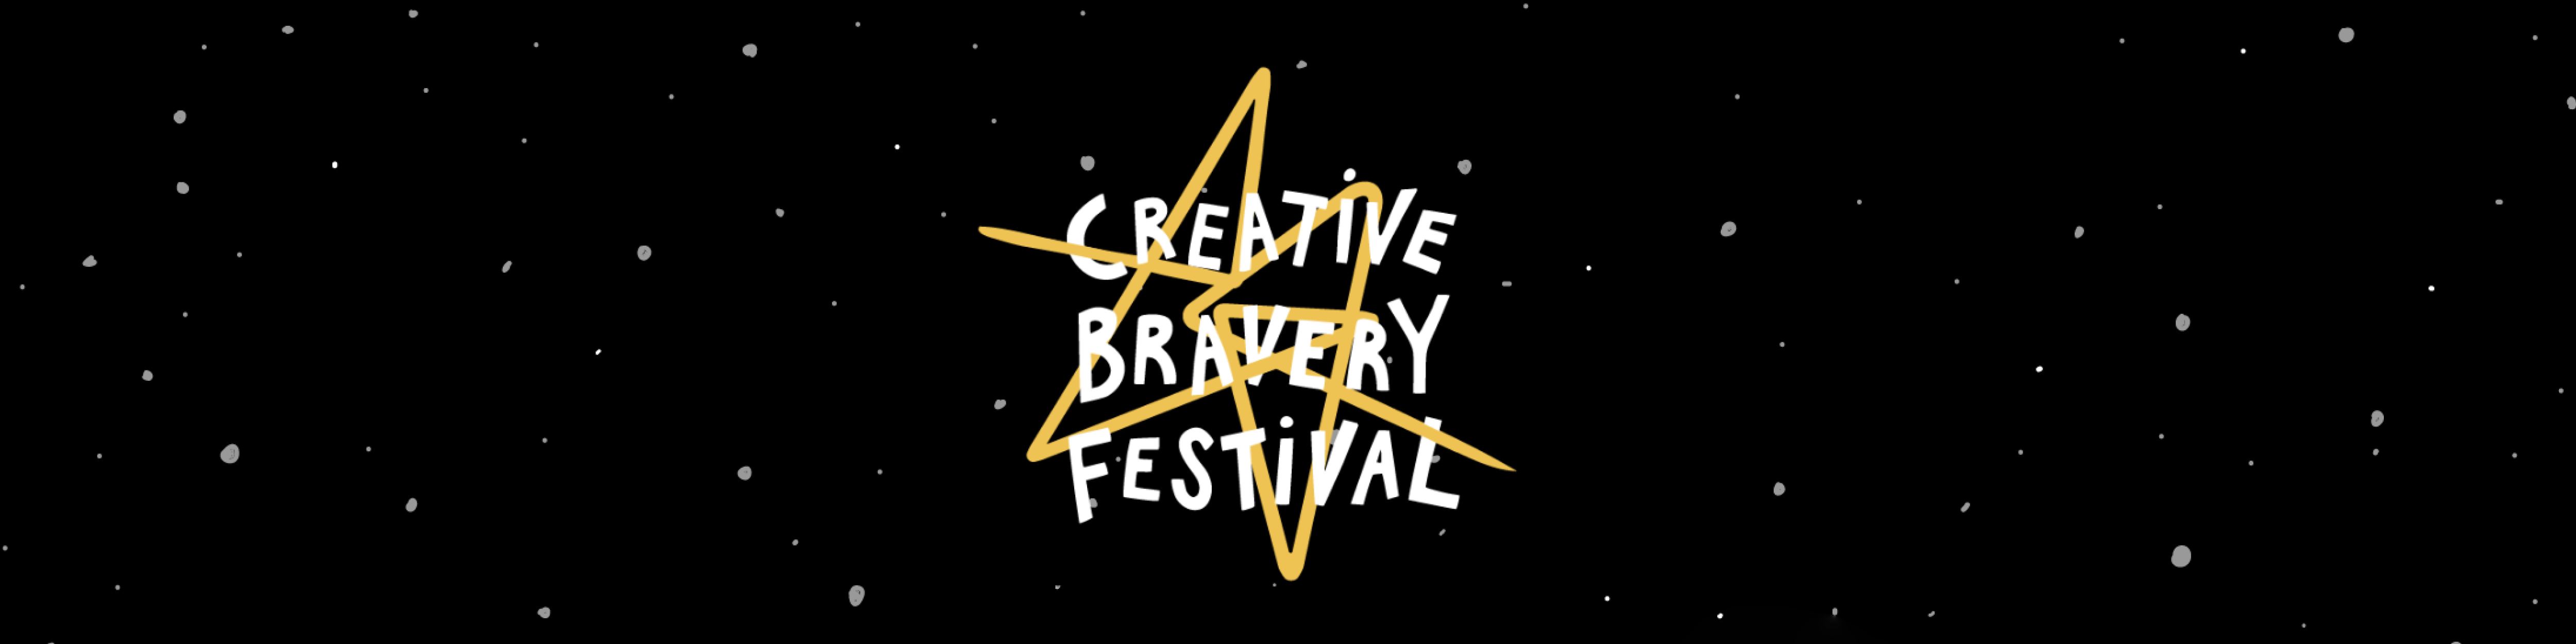 Bitesize Bravery: Encouraging schoolkids to stay creative